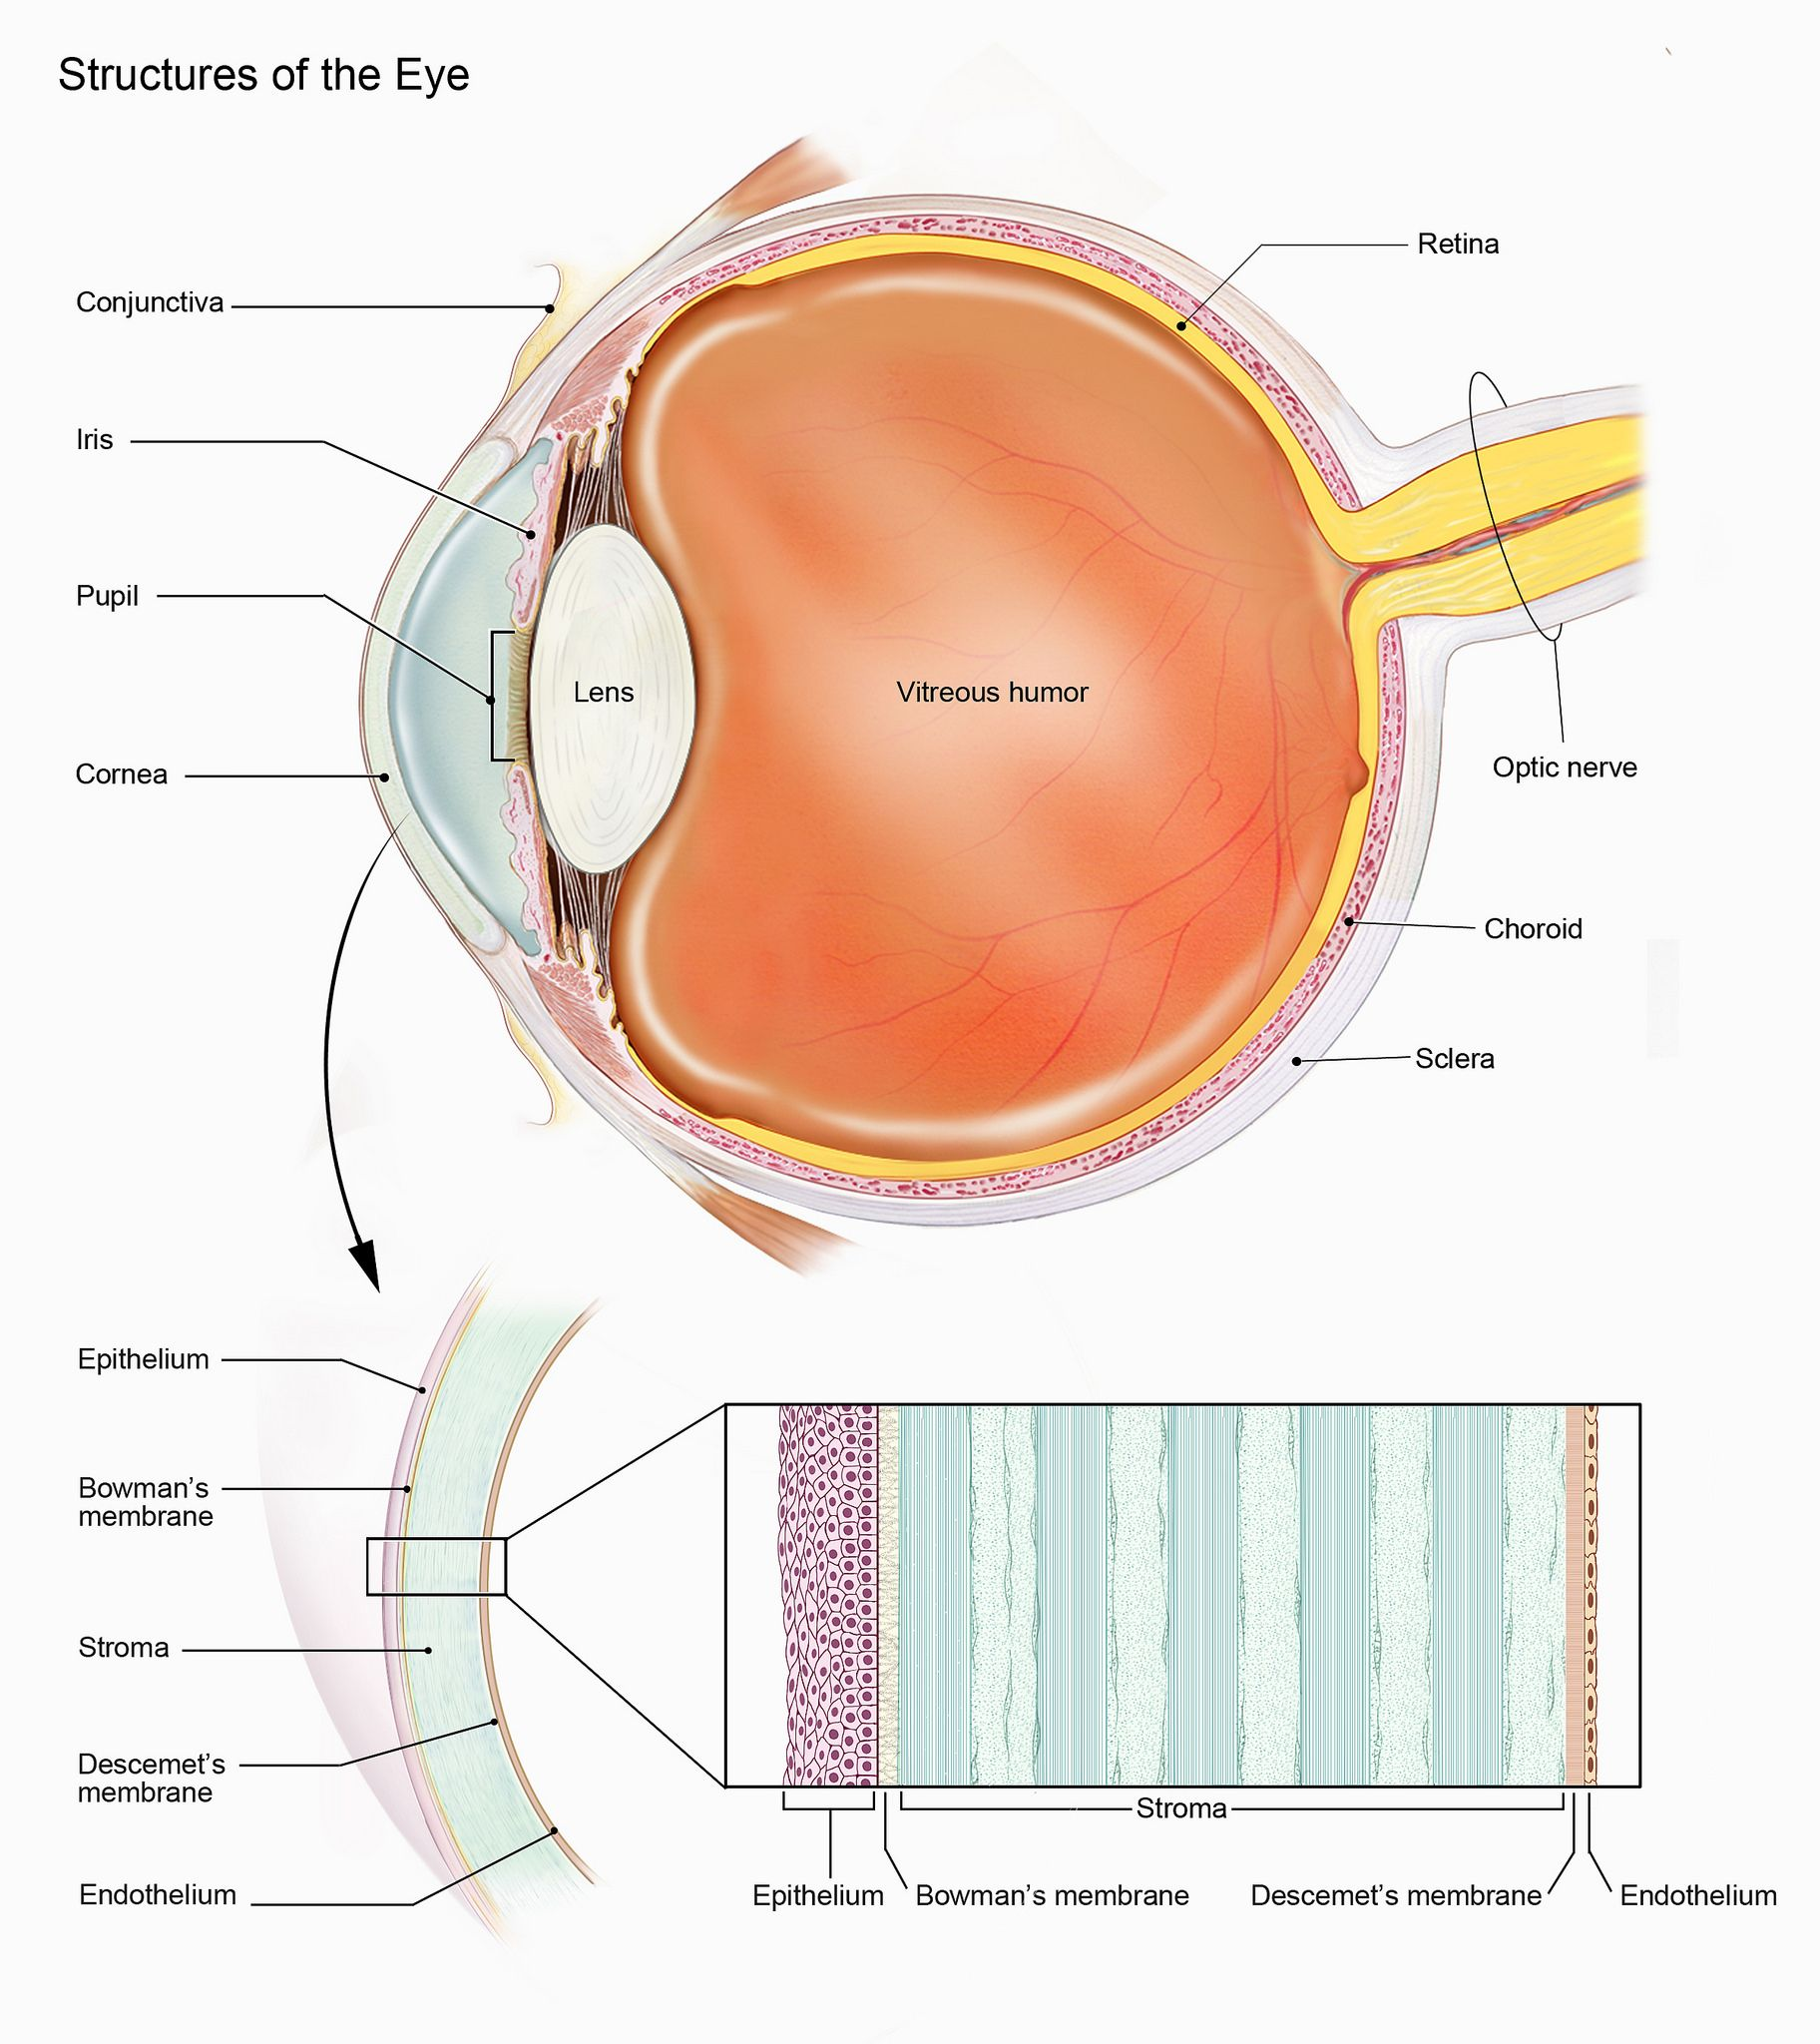 Picture from the NEI showing the anatomy of the eye and layers of ...